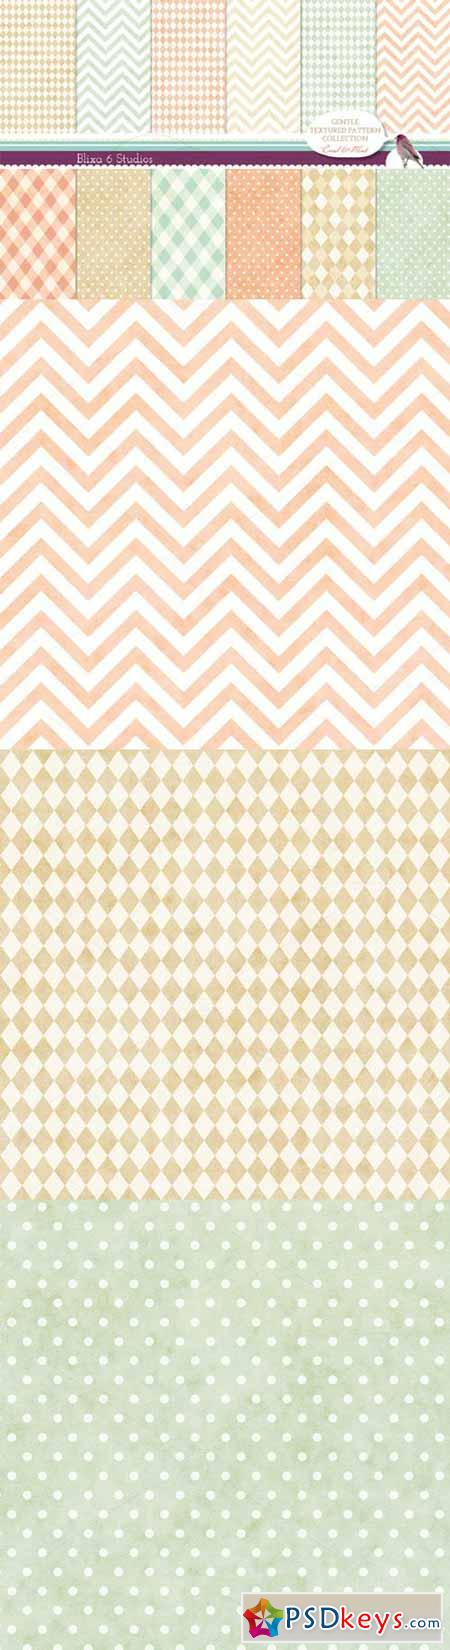 Gently Textured Geometric Patterns  33028